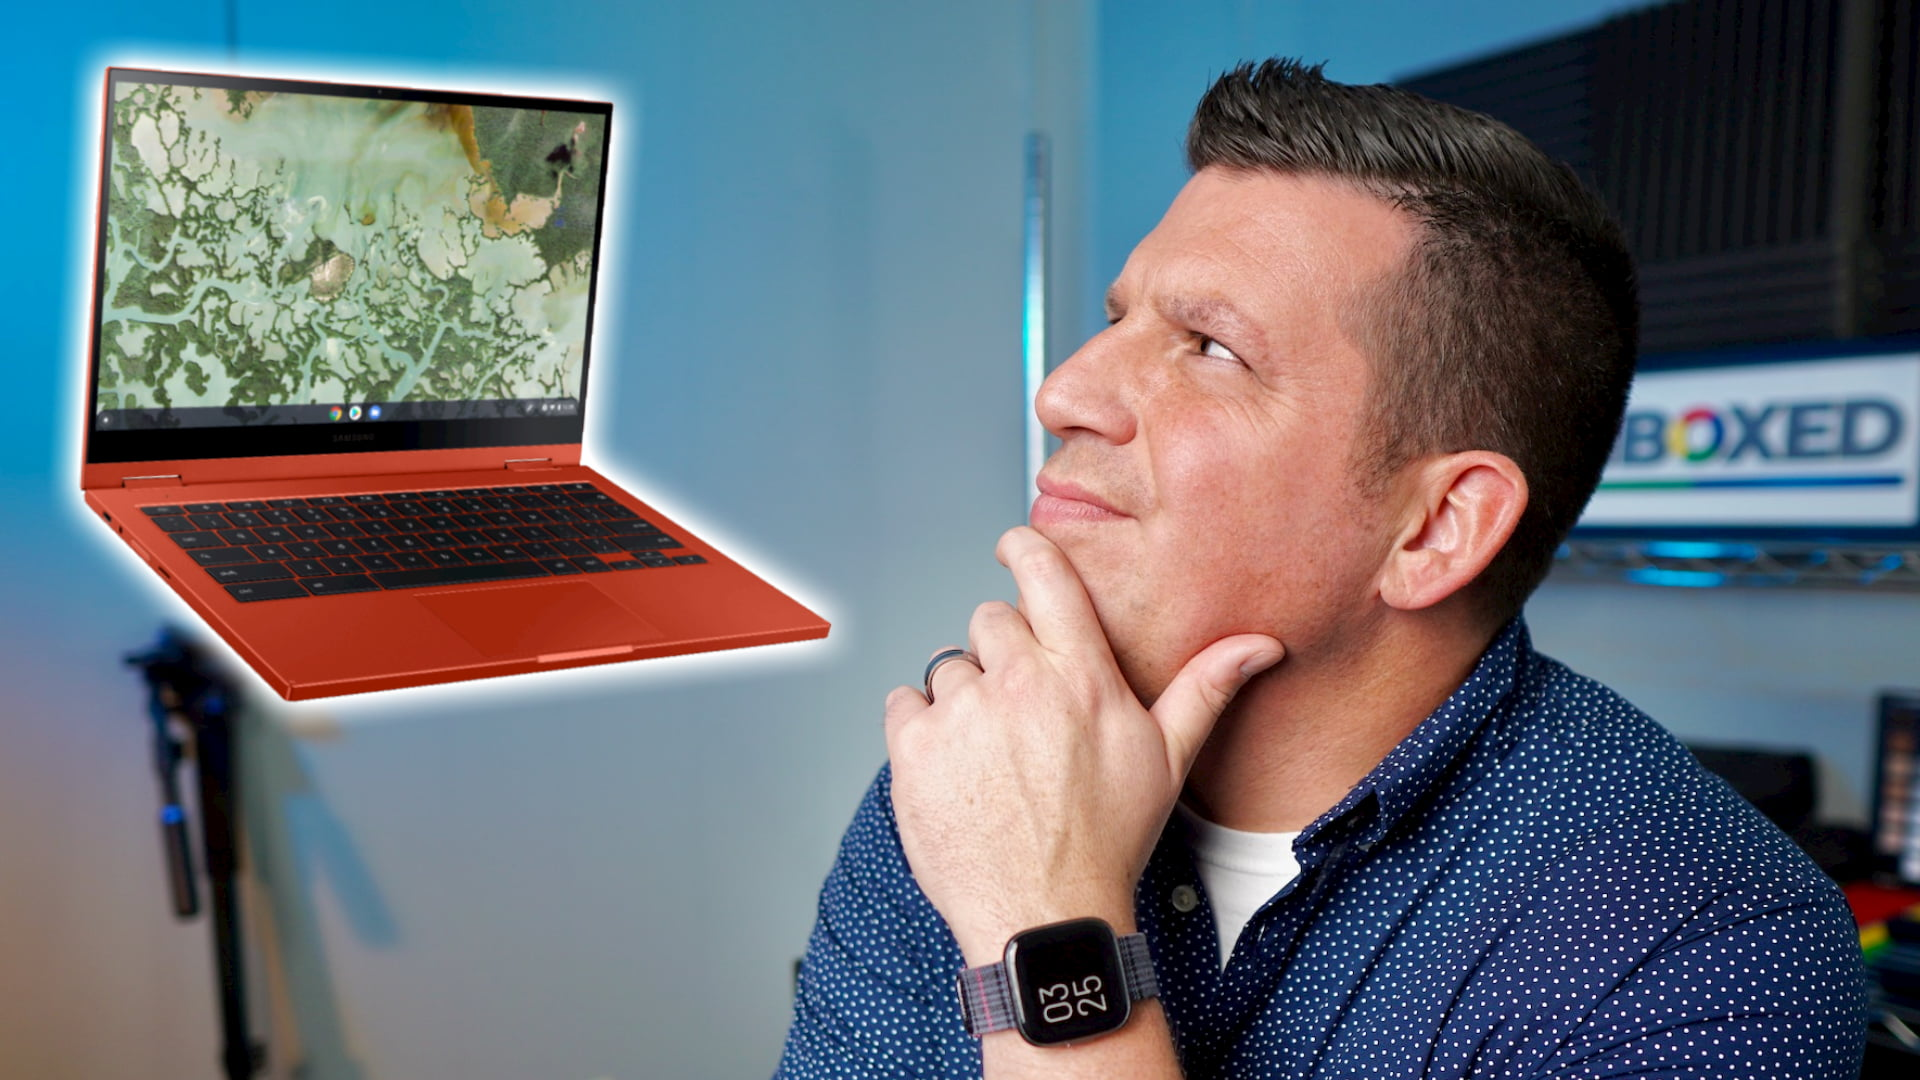 Our reaction to the Samsung Galaxy Chromebook 2 [VIDEO]